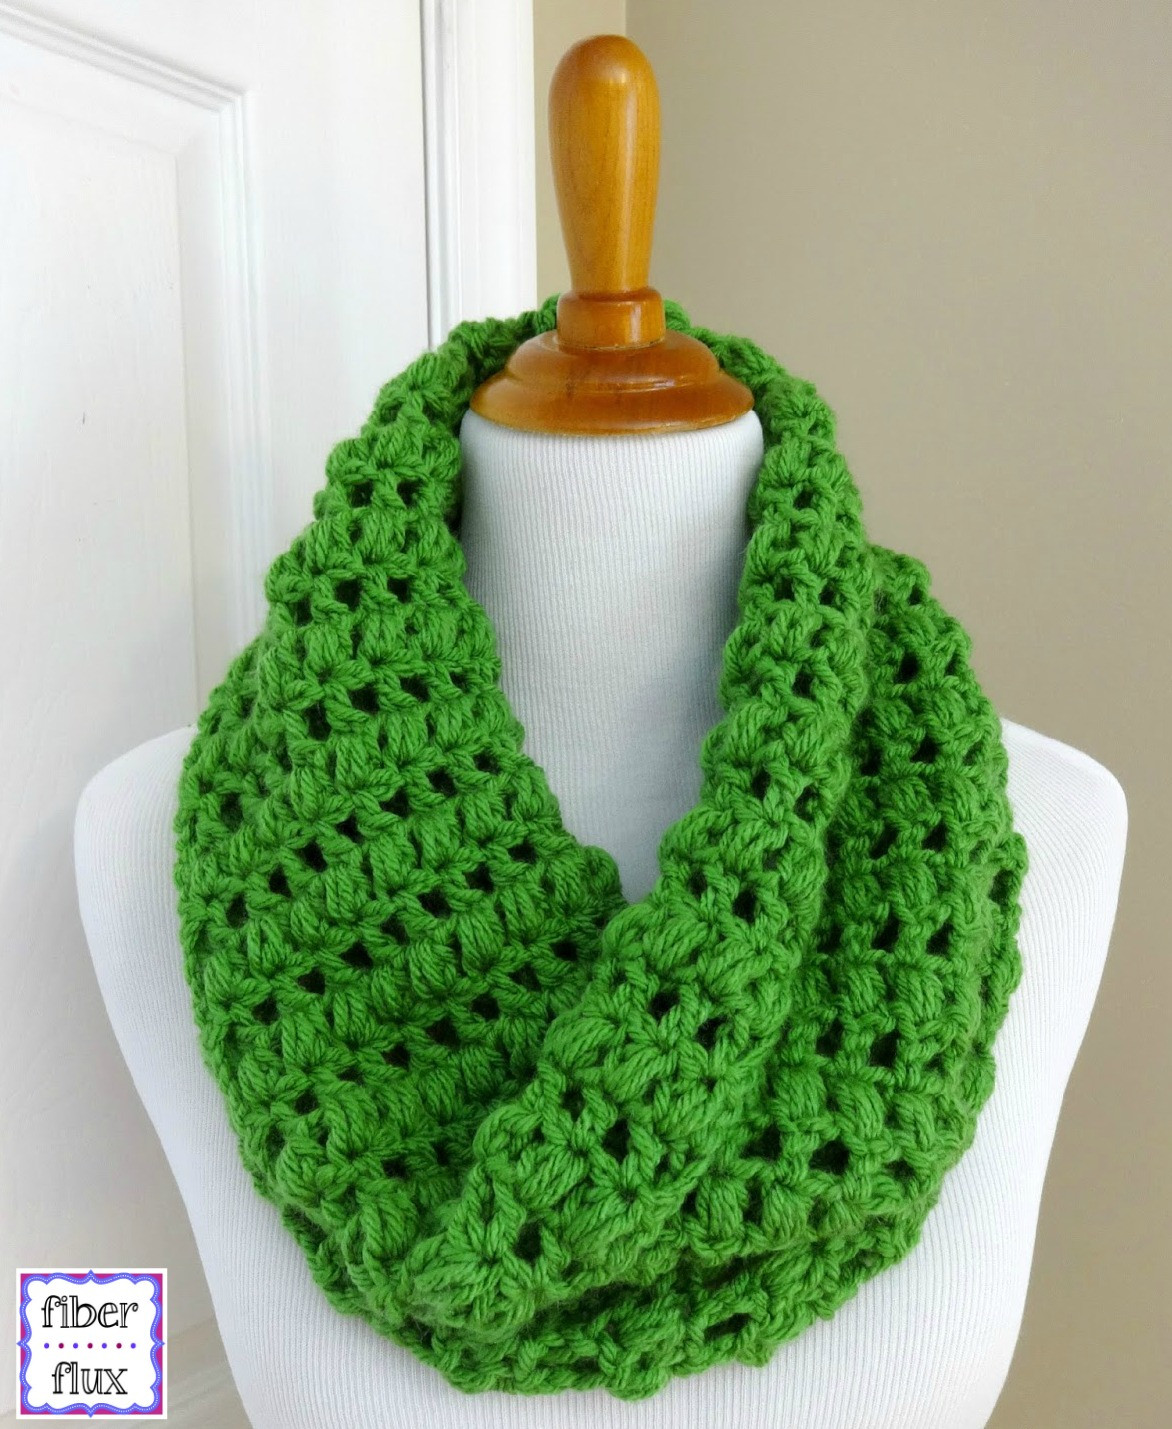 Luxury Fiber Flux Free Crochet Patterns Free Crochet Stitches Of Awesome 41 Models Free Crochet Stitches